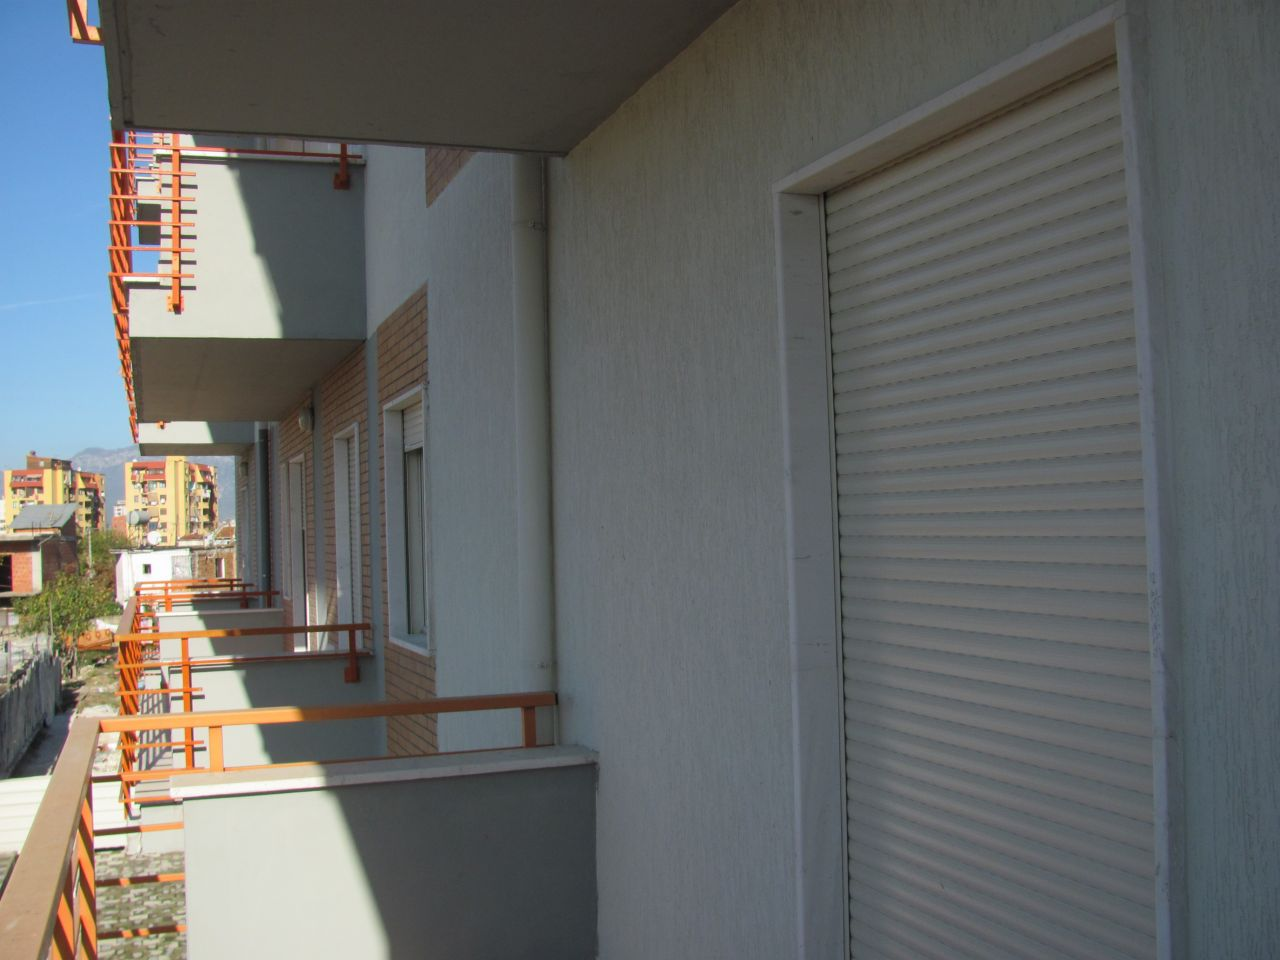 Apartment for Sale in a new neighborhood in Tirana, Albania. The building is of a good quality.